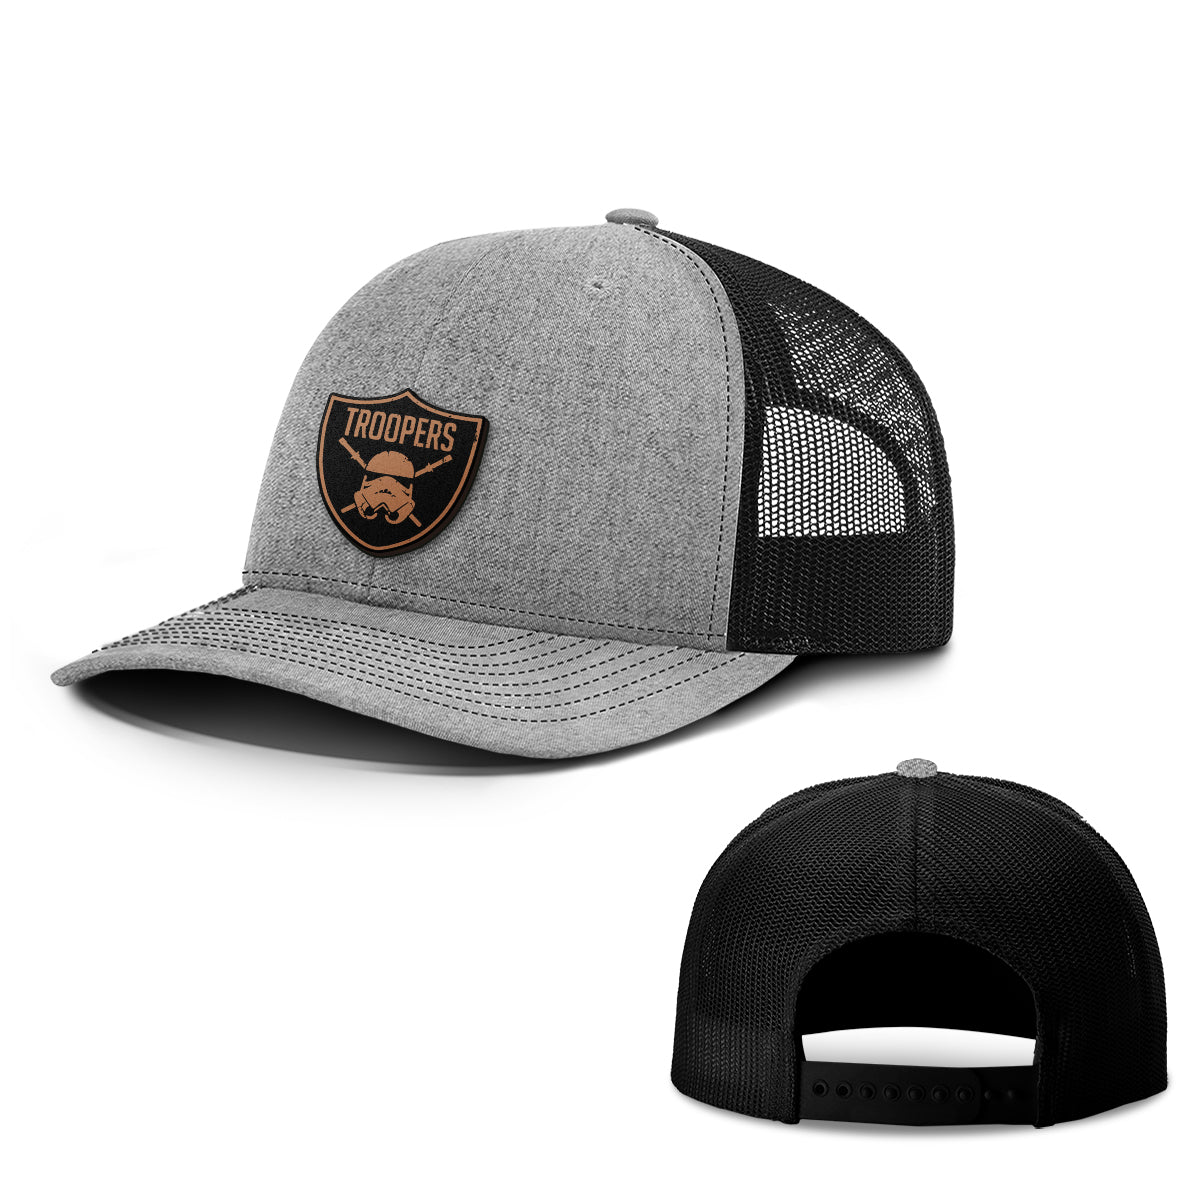 Troopers Leather Patch Hats